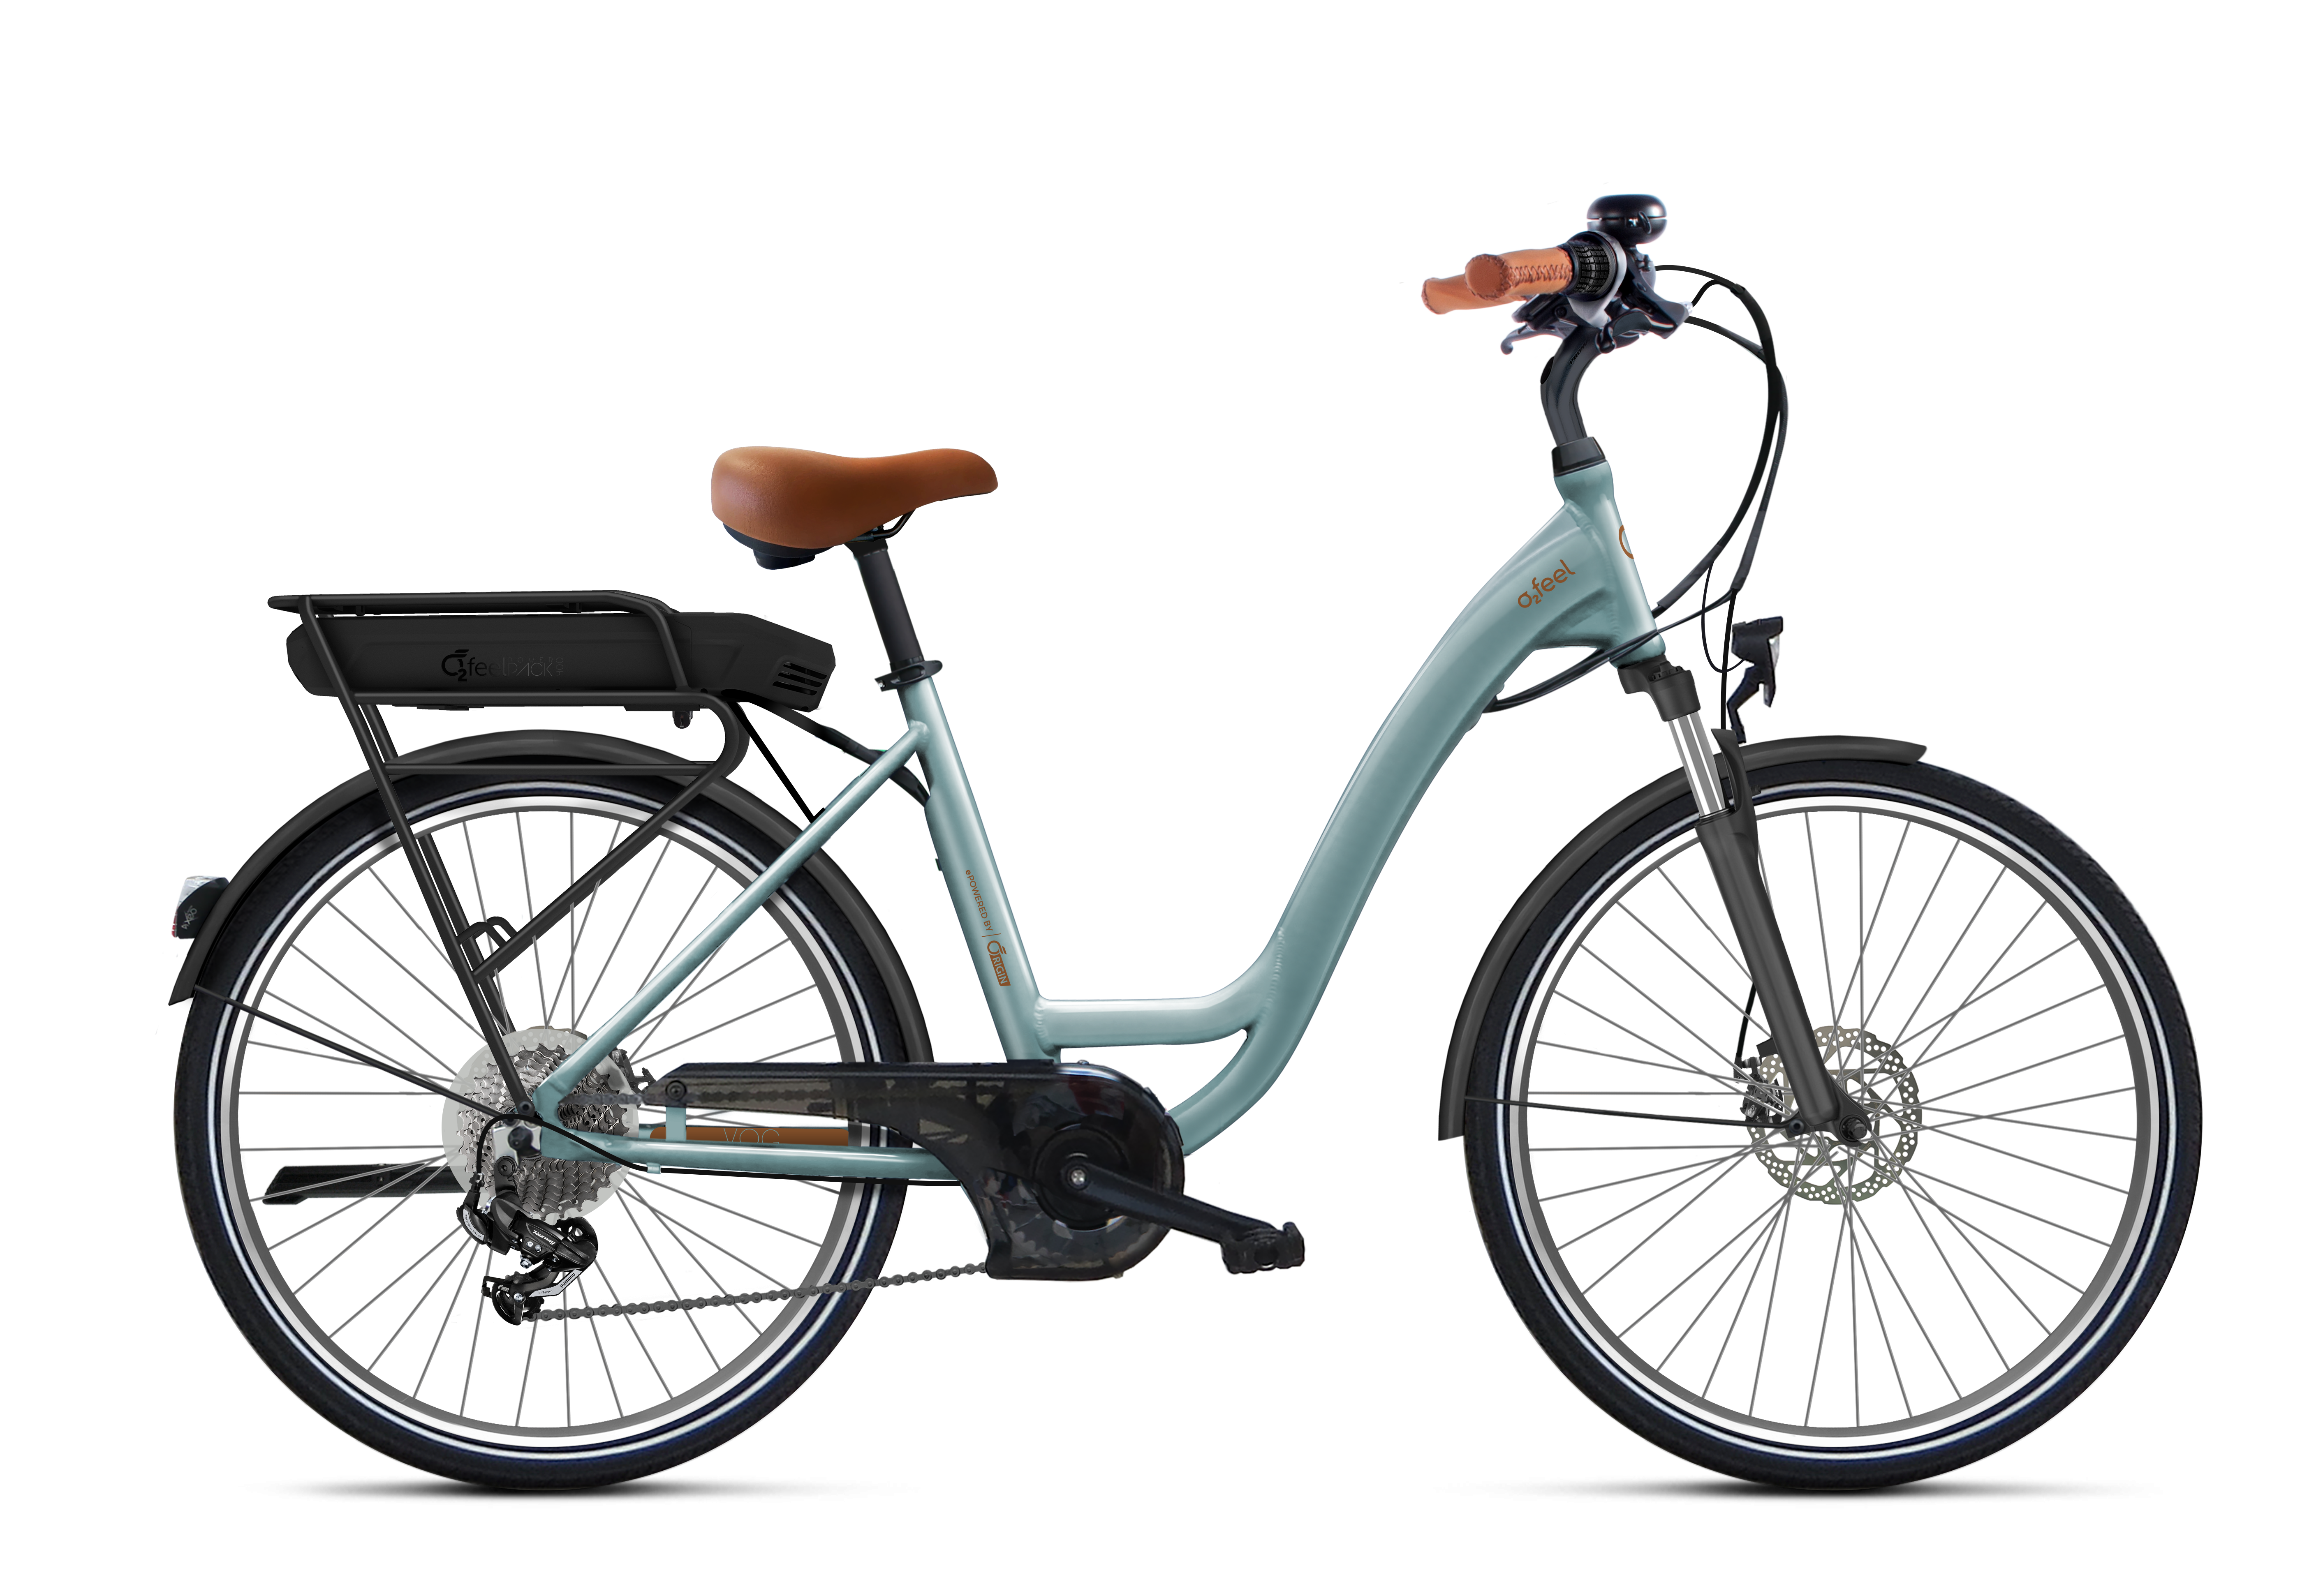 https://w8w5m3f8.stackpathcdn.com/21572-thickbox_extralarge/velo-electrique-urbain-o2feel-vog-city-origin-21-400wh.jpg